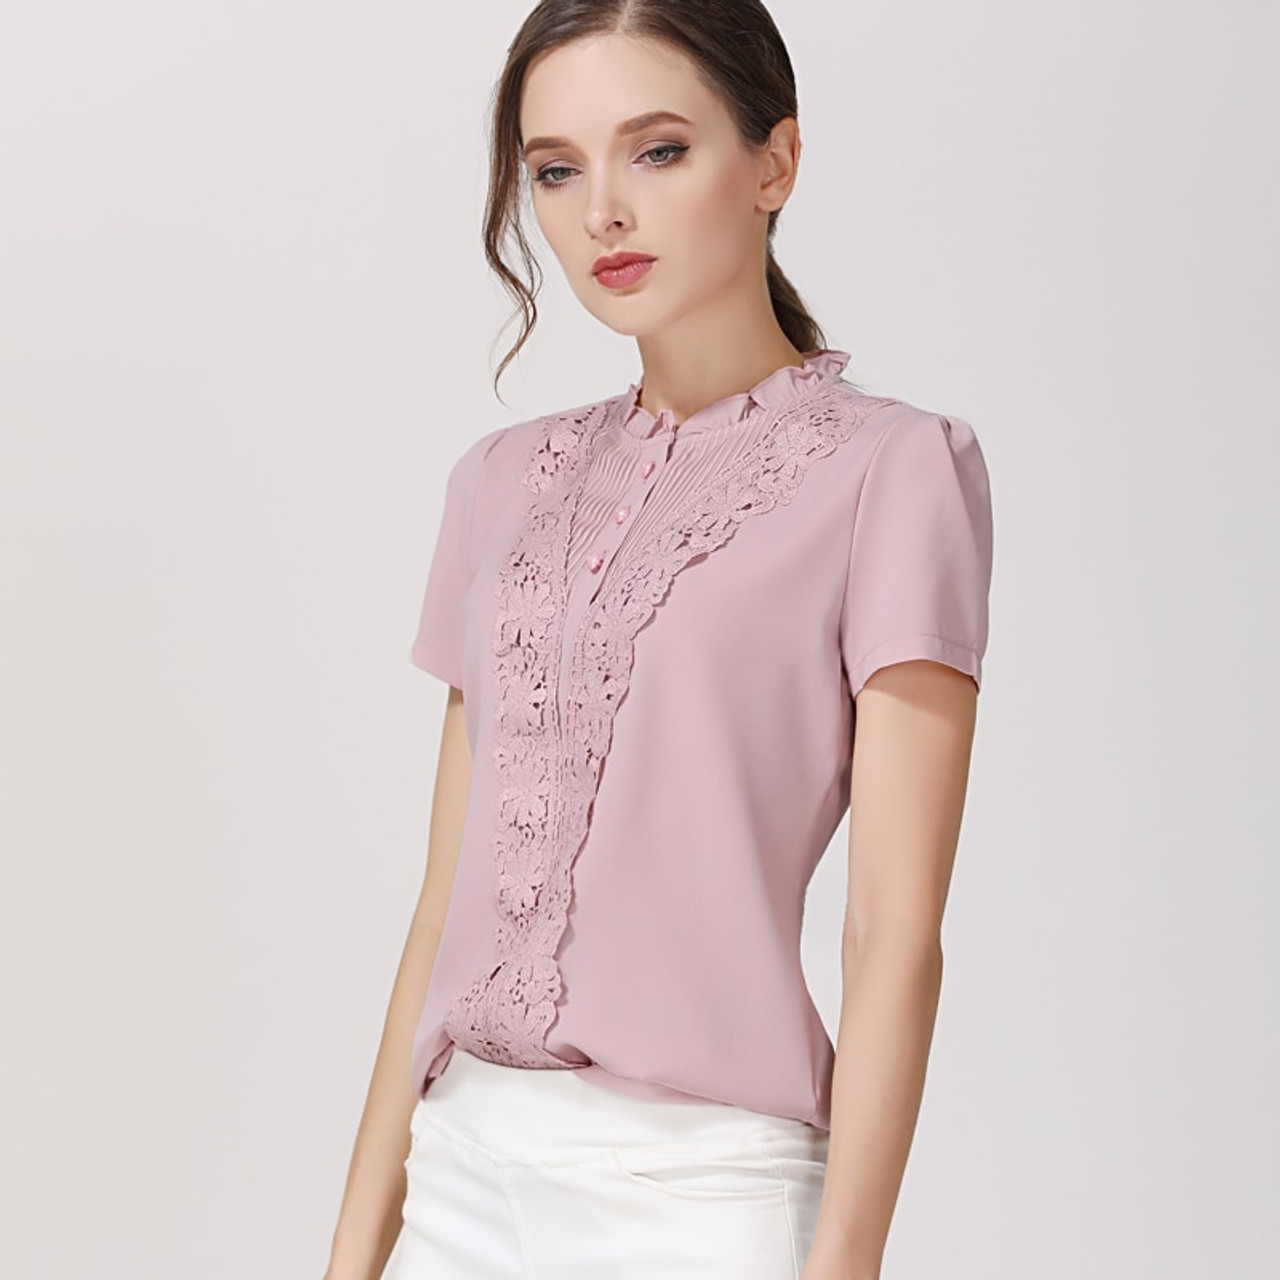 9a33926469ea38 ... New 2018 Summer Fashion Chiffon Women Blouses Shirts Short Sleeve Tops  Lace Chiffon Women Blouse Shirt ...